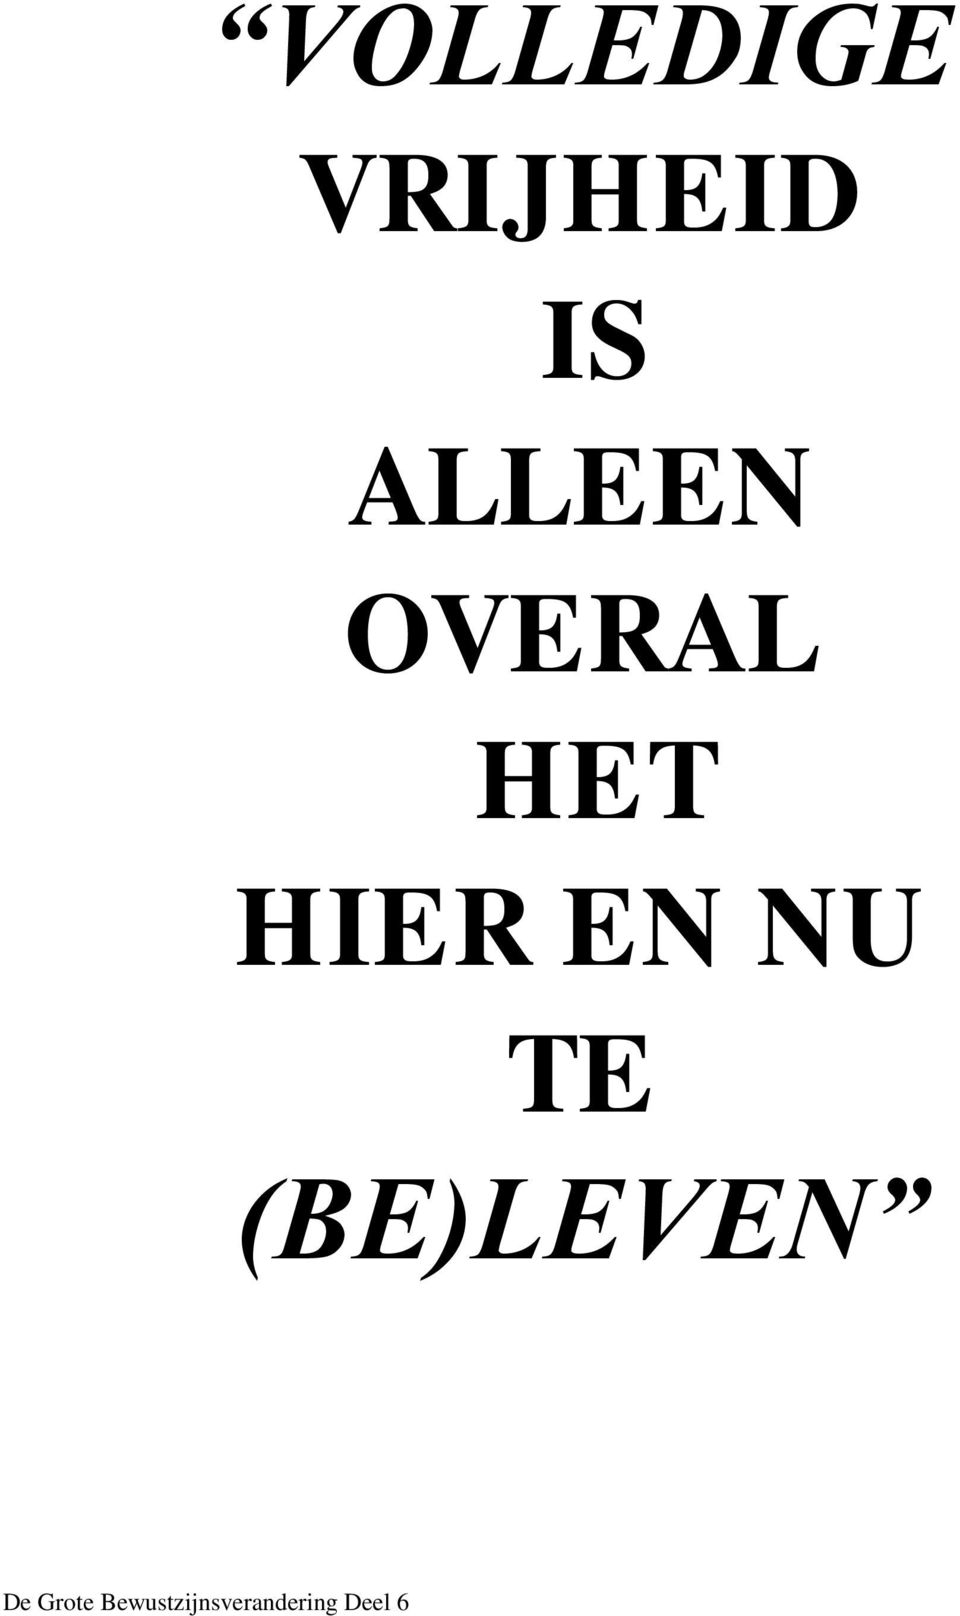 ALLEEN OVERAL